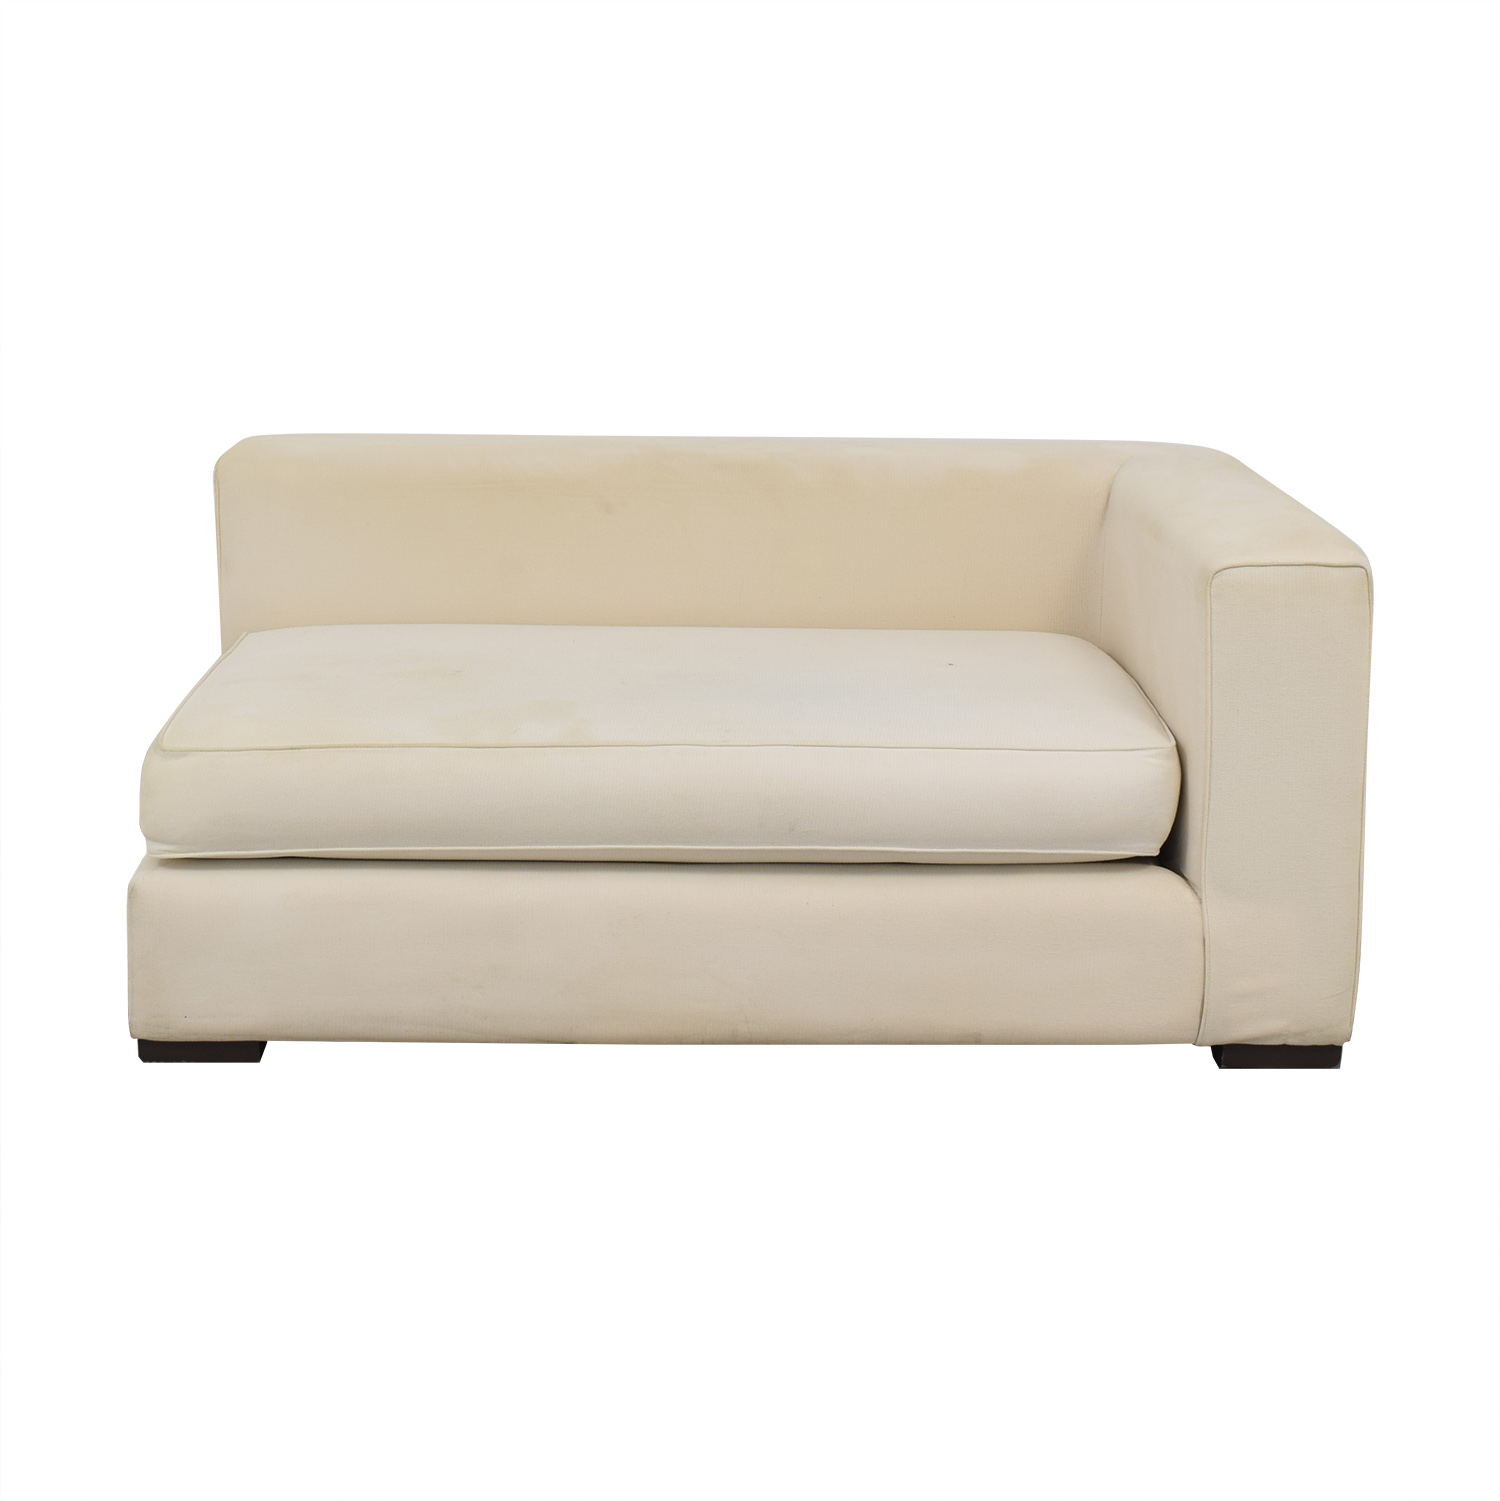 shop West Elm West Elm Modern Chaise Lounge online